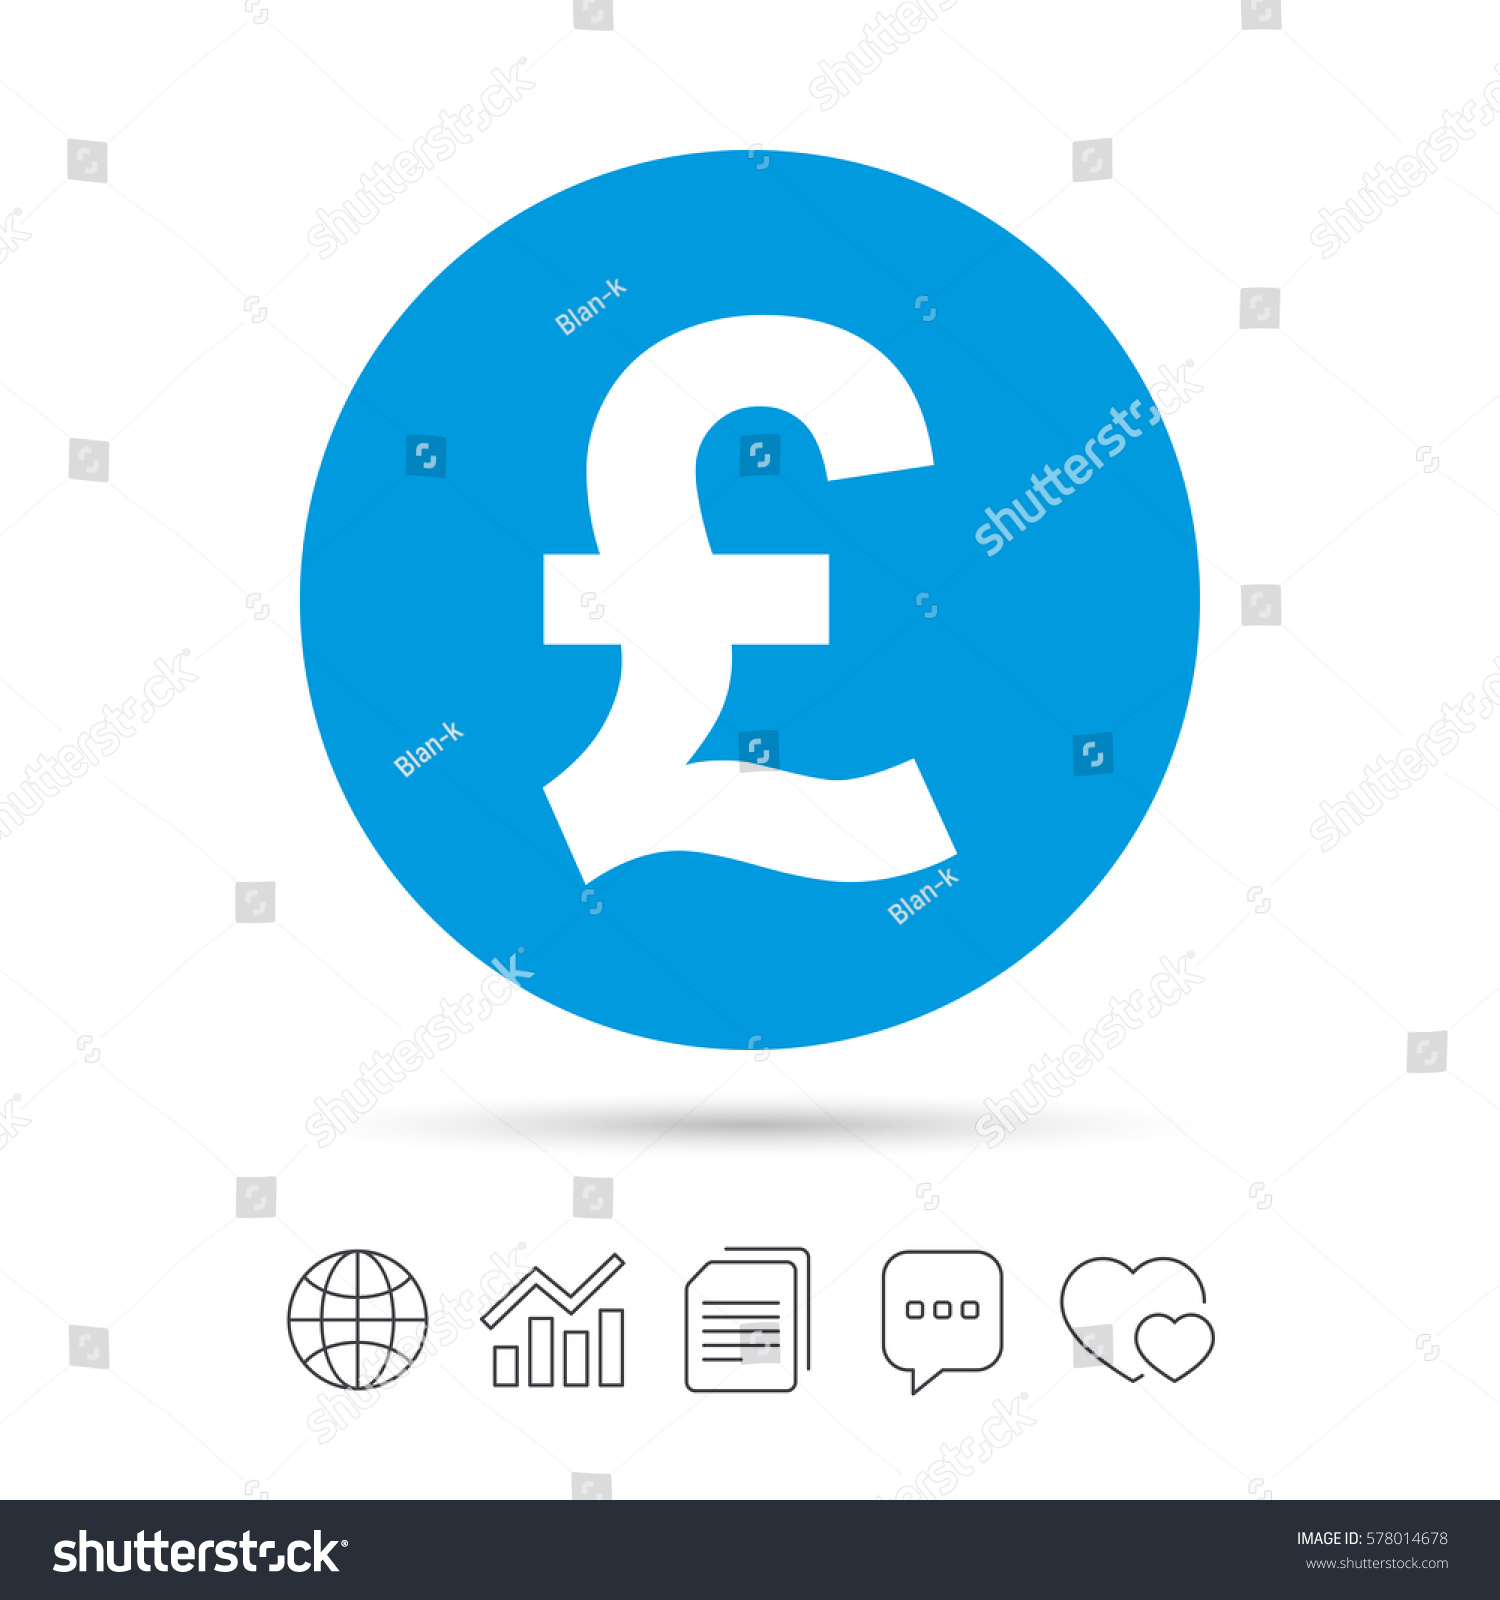 Pound sign icon gbp currency symbol stock vector 578014678 pound sign icon gbp currency symbol money label copy files chat speech buycottarizona Choice Image